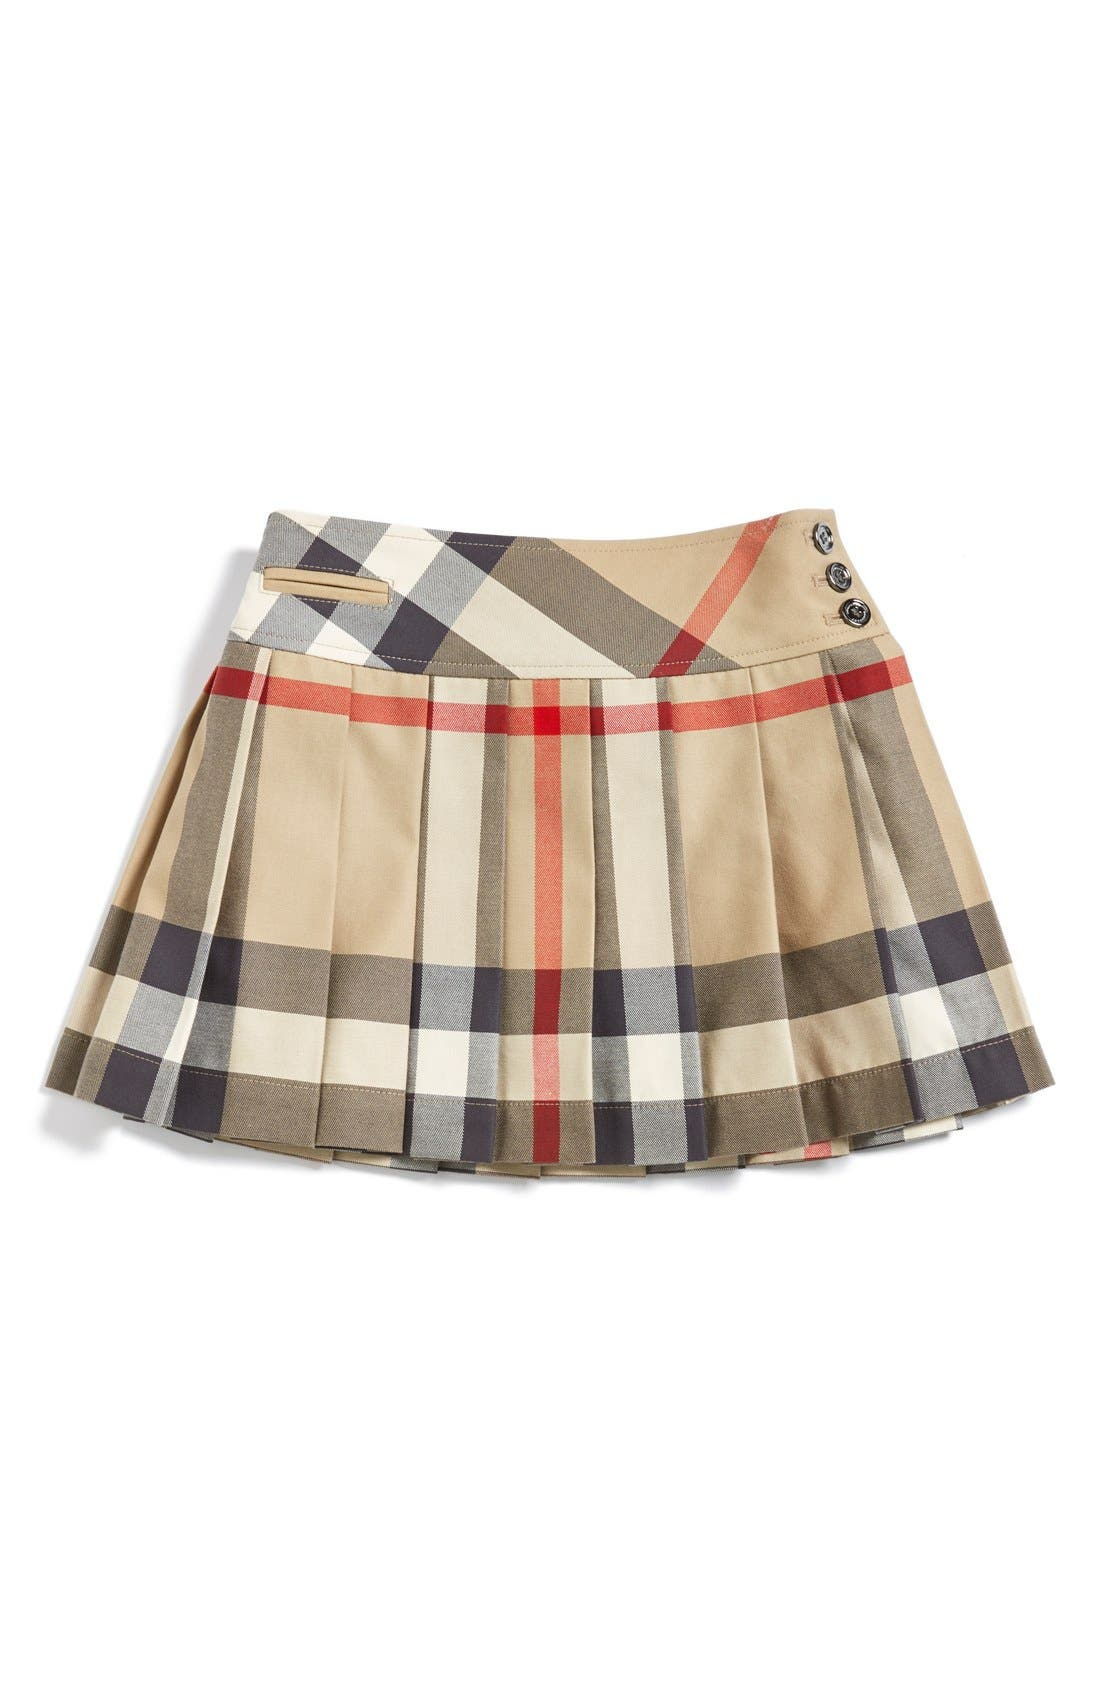 Main Image - Burberry Check Print Skirt (Little Girls & Big Girls)